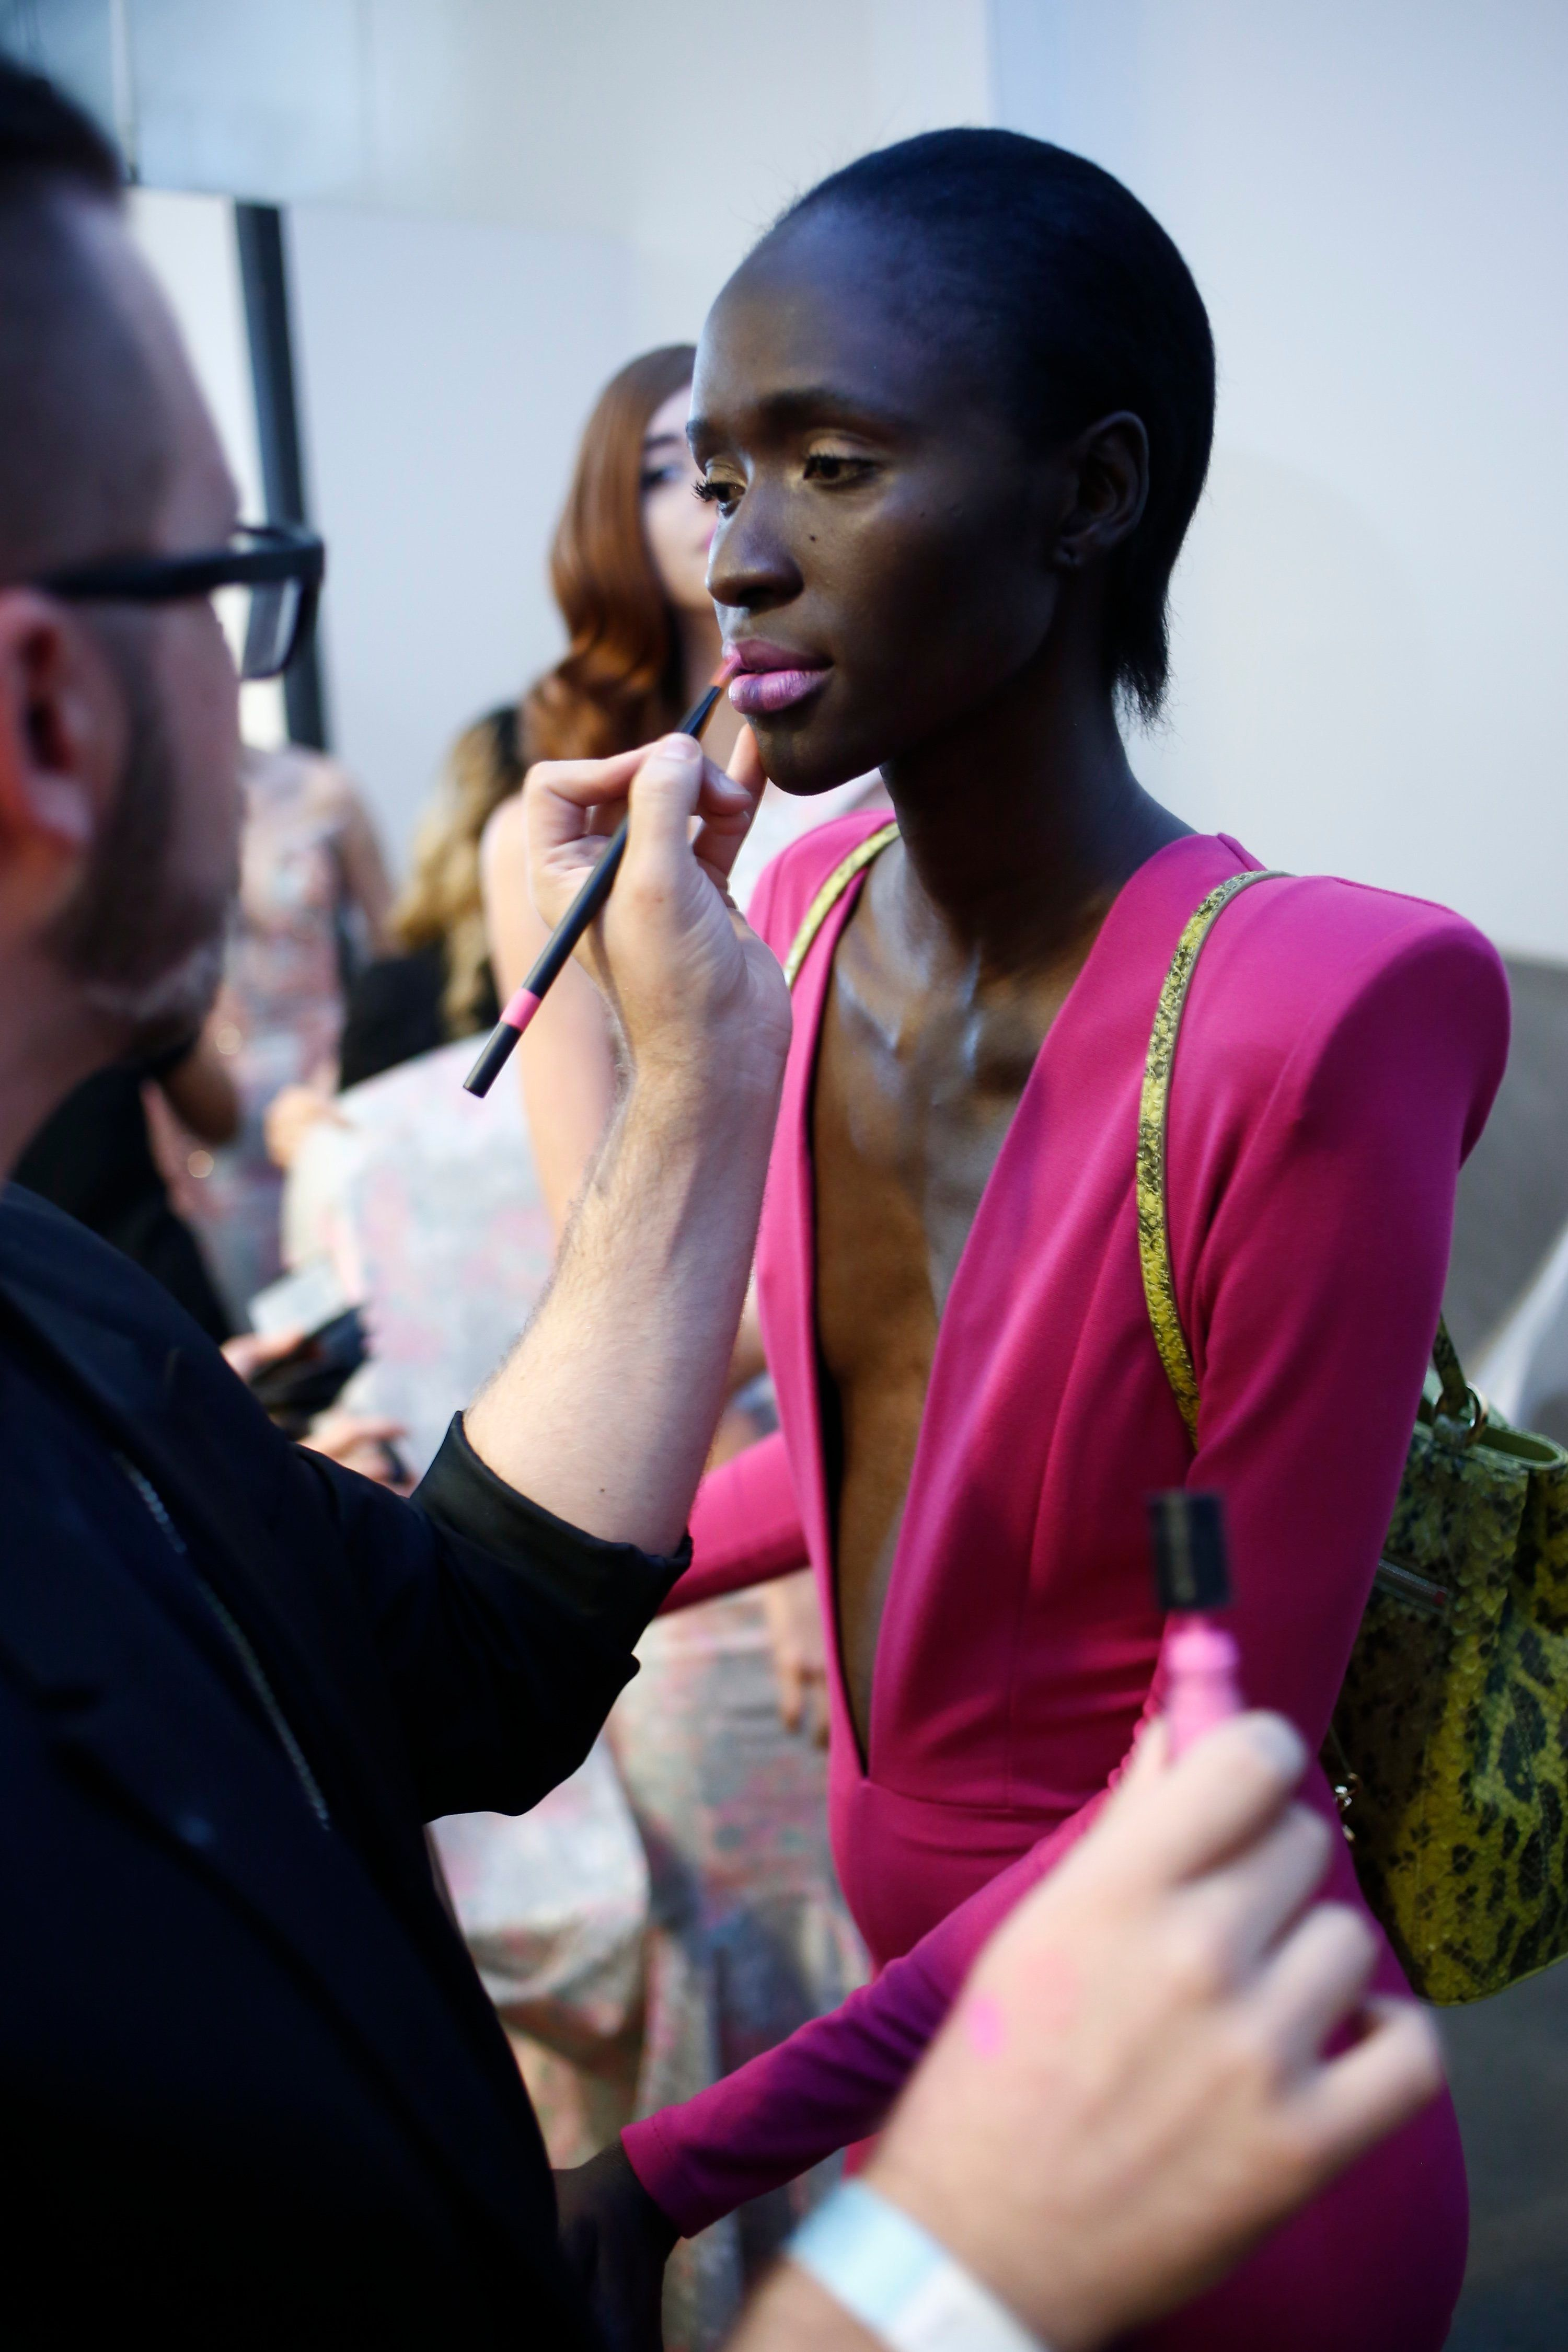 A model getting ready backstage at the Michael Costello show during Spring 2016 New York Fashion Week at Pier 59 on September 15, 2015 in New York City.